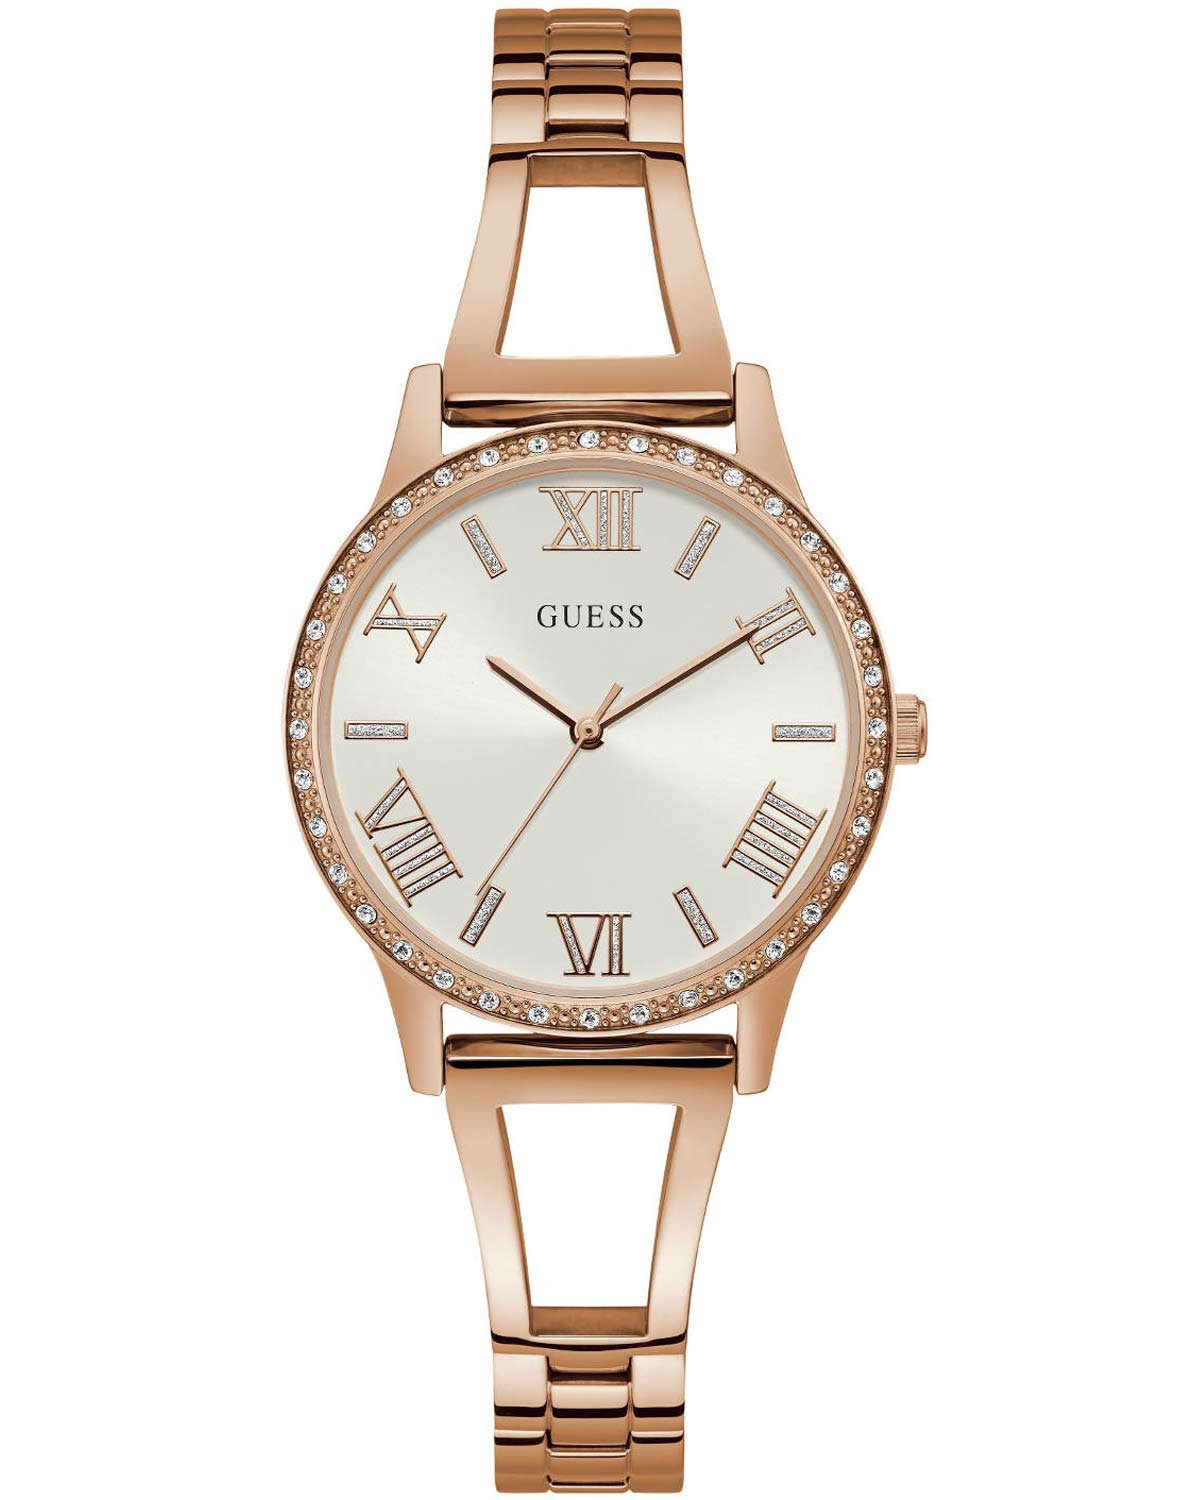 68e218787080 Ρολόι GUESS Ladies Crystals Rose Gold Stainless Steel Bracelet ...